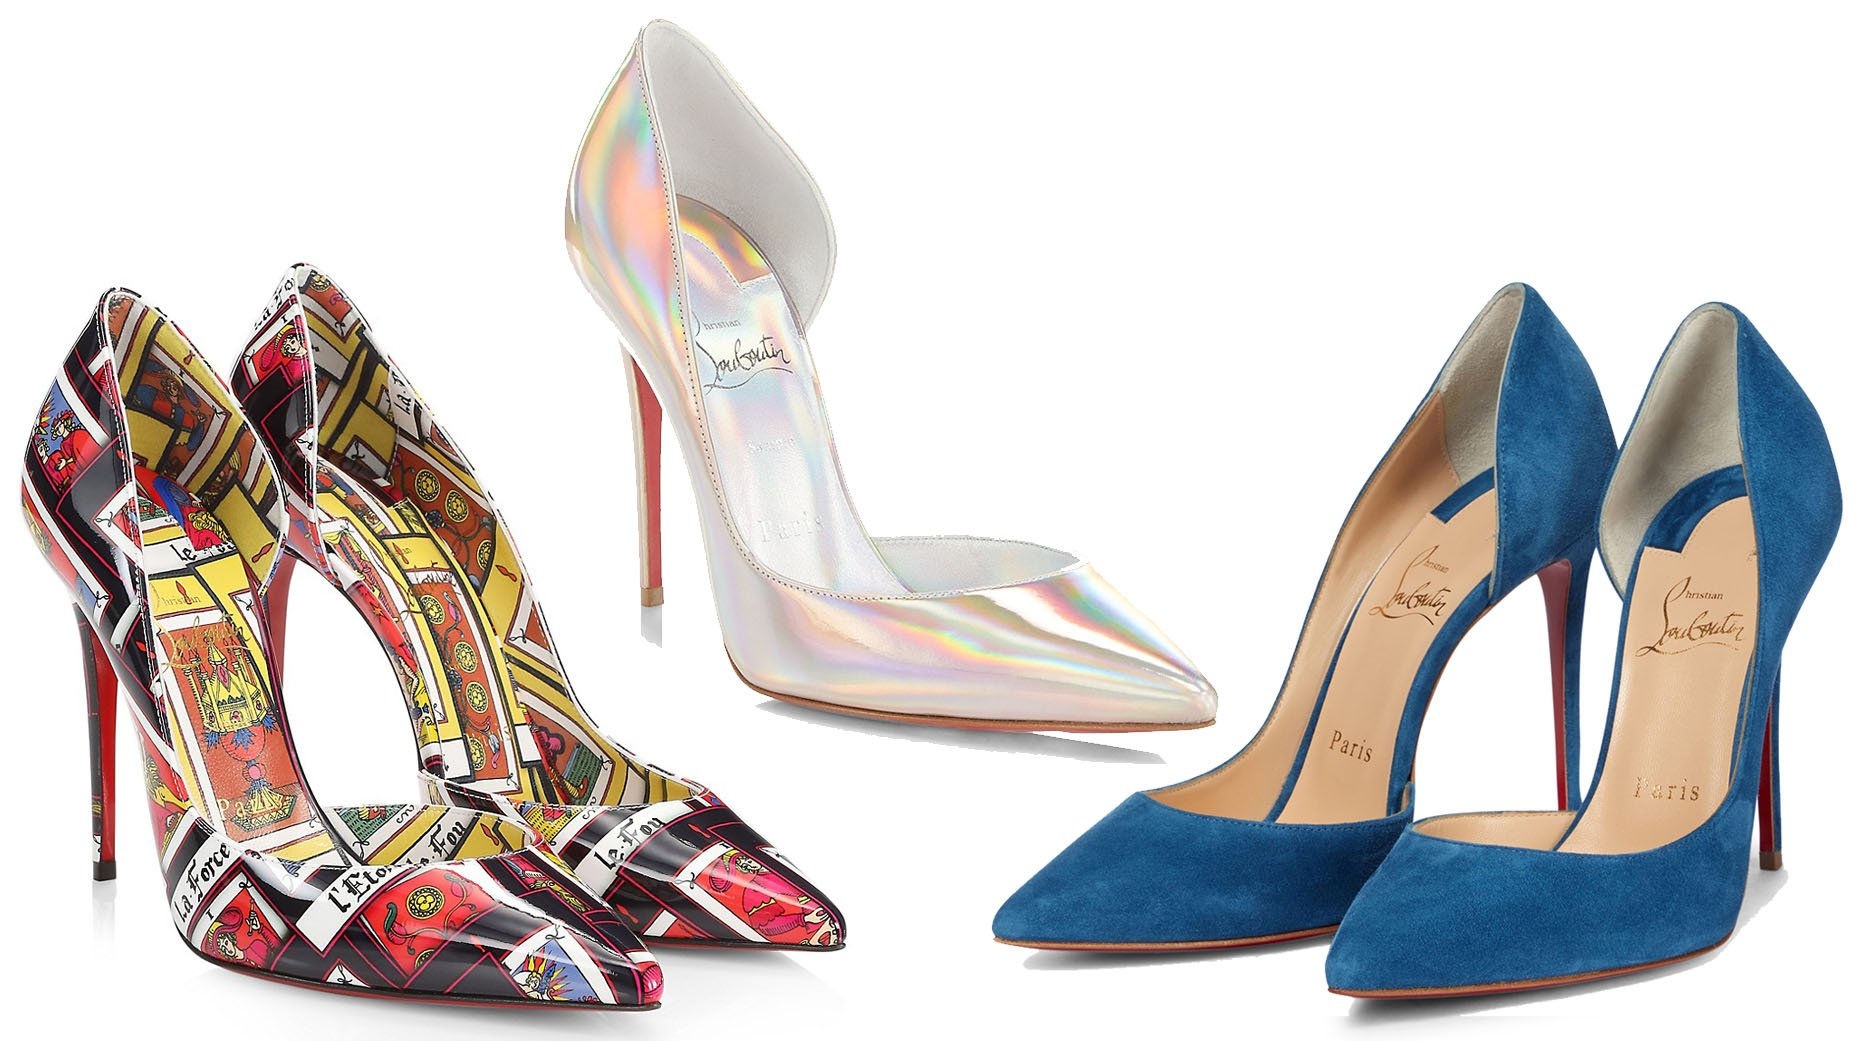 Aside from the classics, you can find the Iriza pumps in multiple colors, designs, and materials